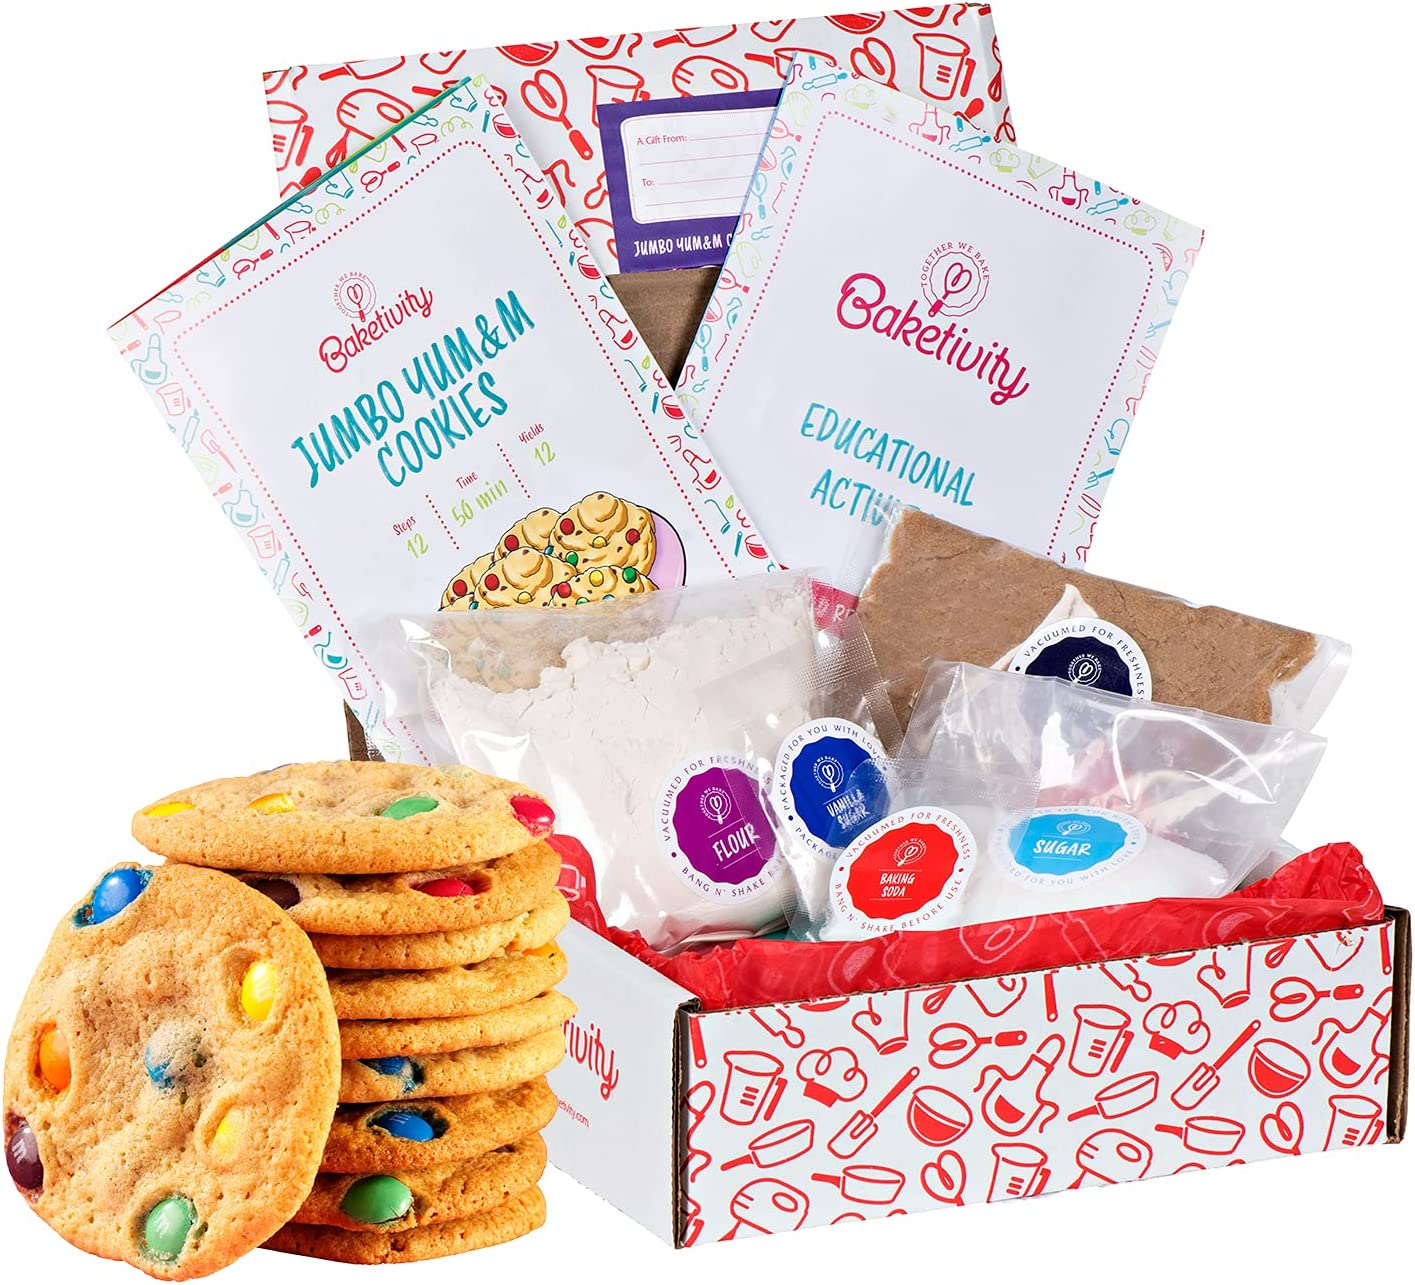 Baketivity Kids Baking Set, Meal Cooking Party Supply Kit for Teens, Real Fun Little Junior Chef Essential Kitchen Lessons, Includes Pre-Measured Ingredients (Baketivity Kit, Jumbo Yum&m)